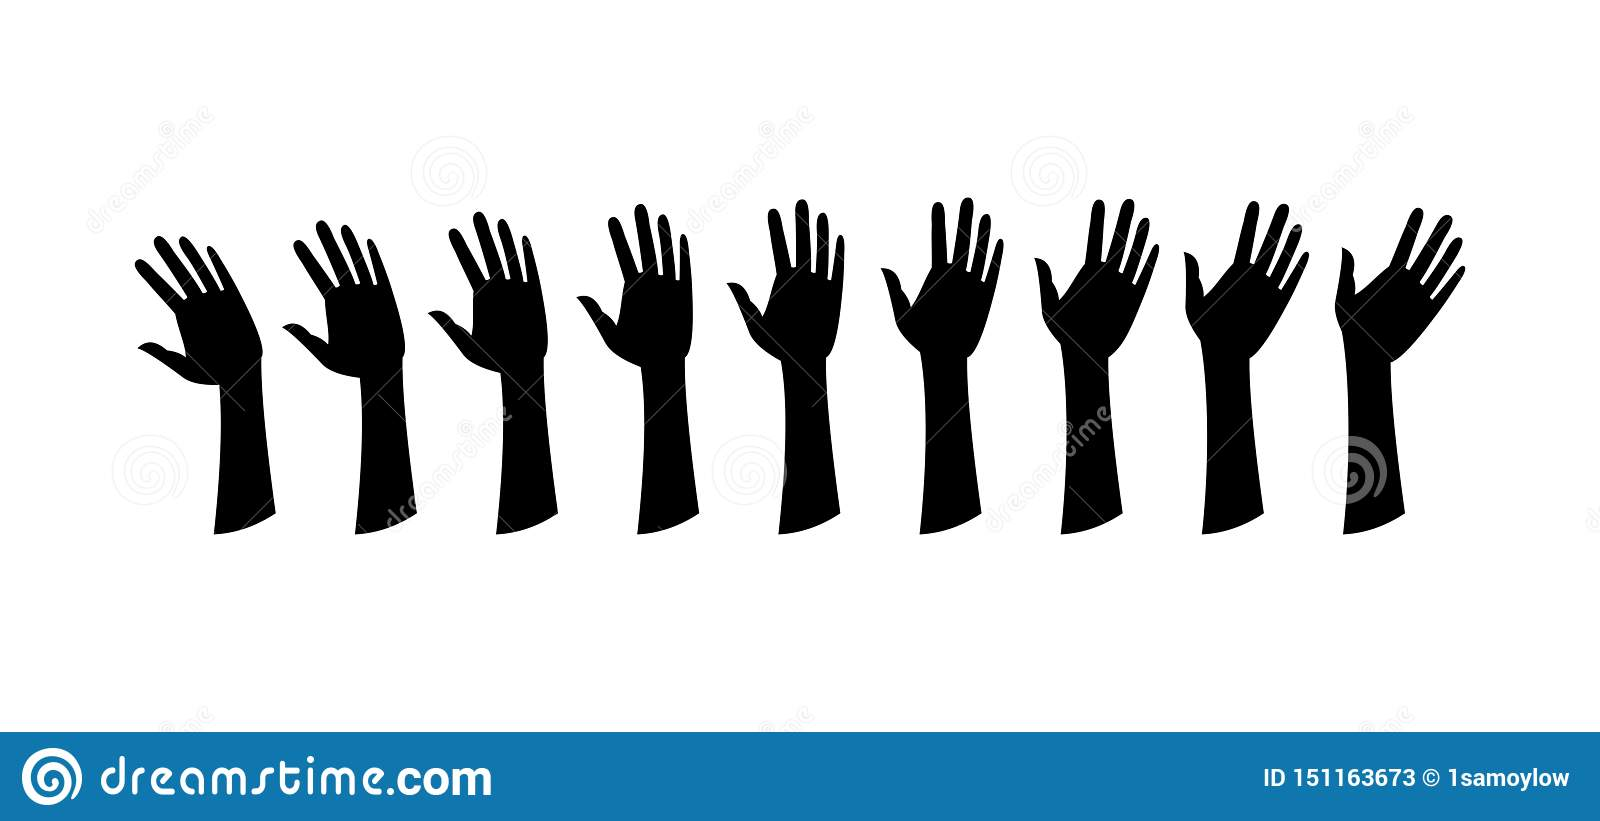 Human hands, wave the hand